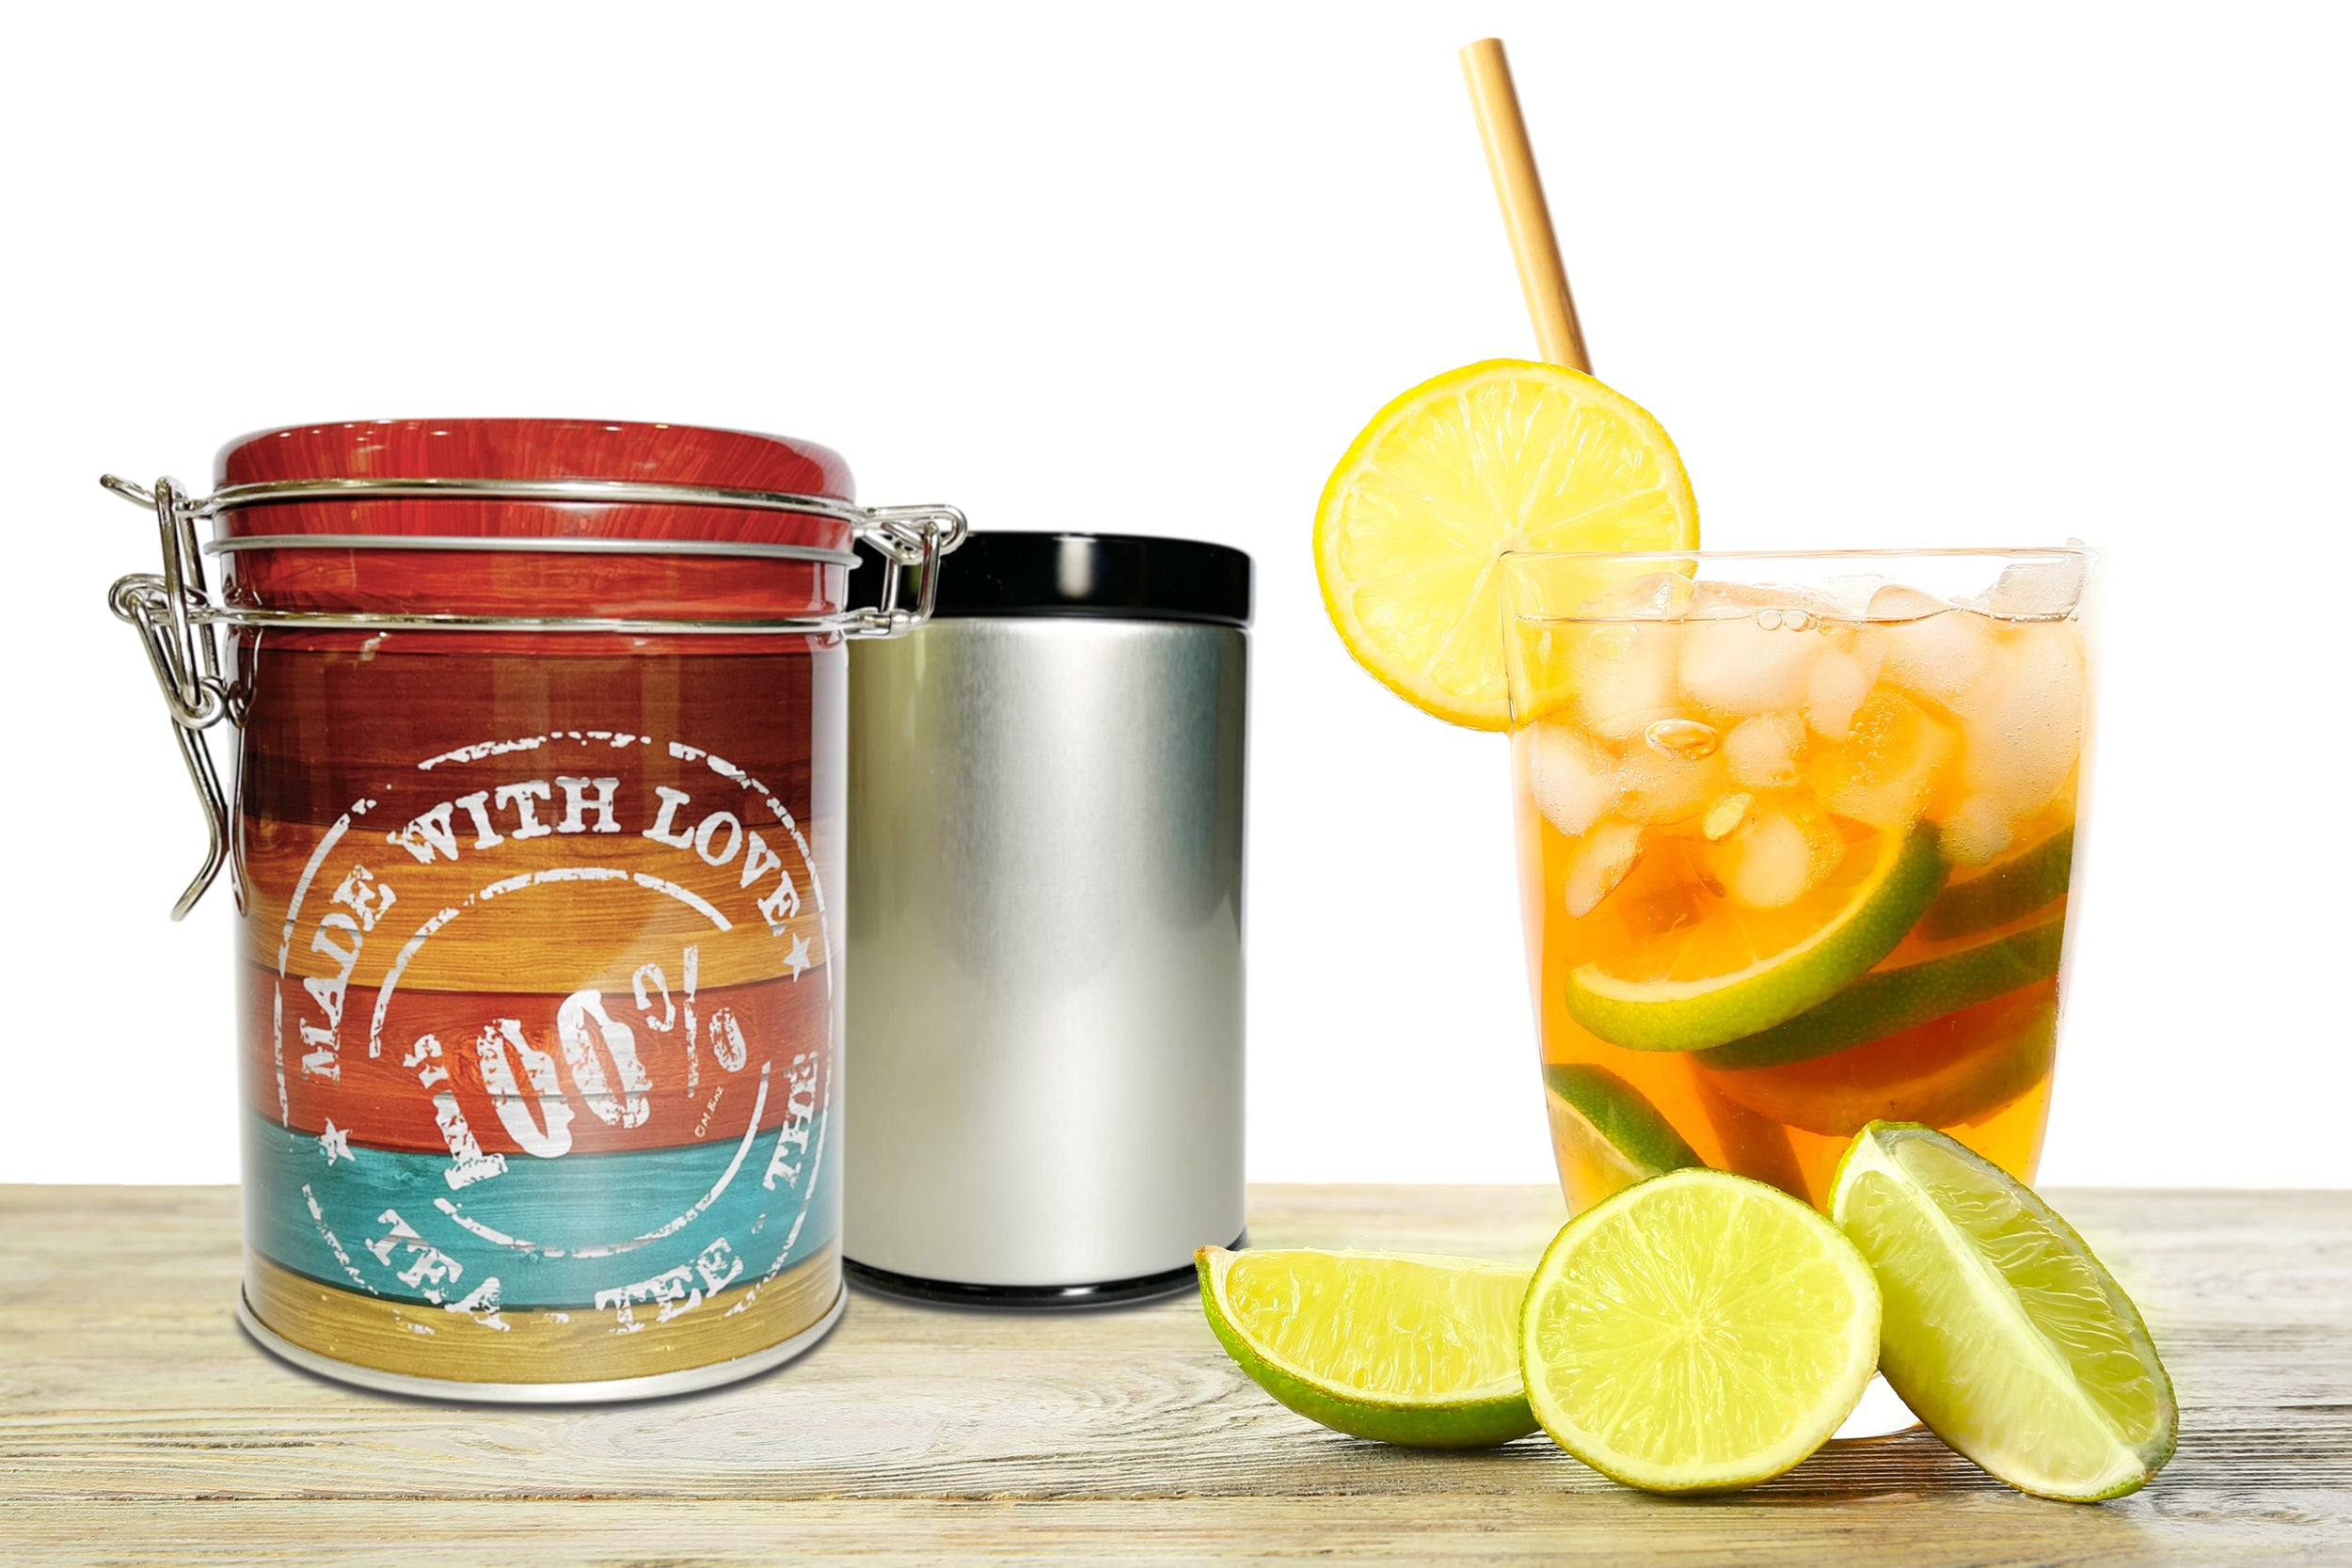 Uptown Tea Shop - Premium Loose Leaf Teas and Accessories - Airtight Canisters